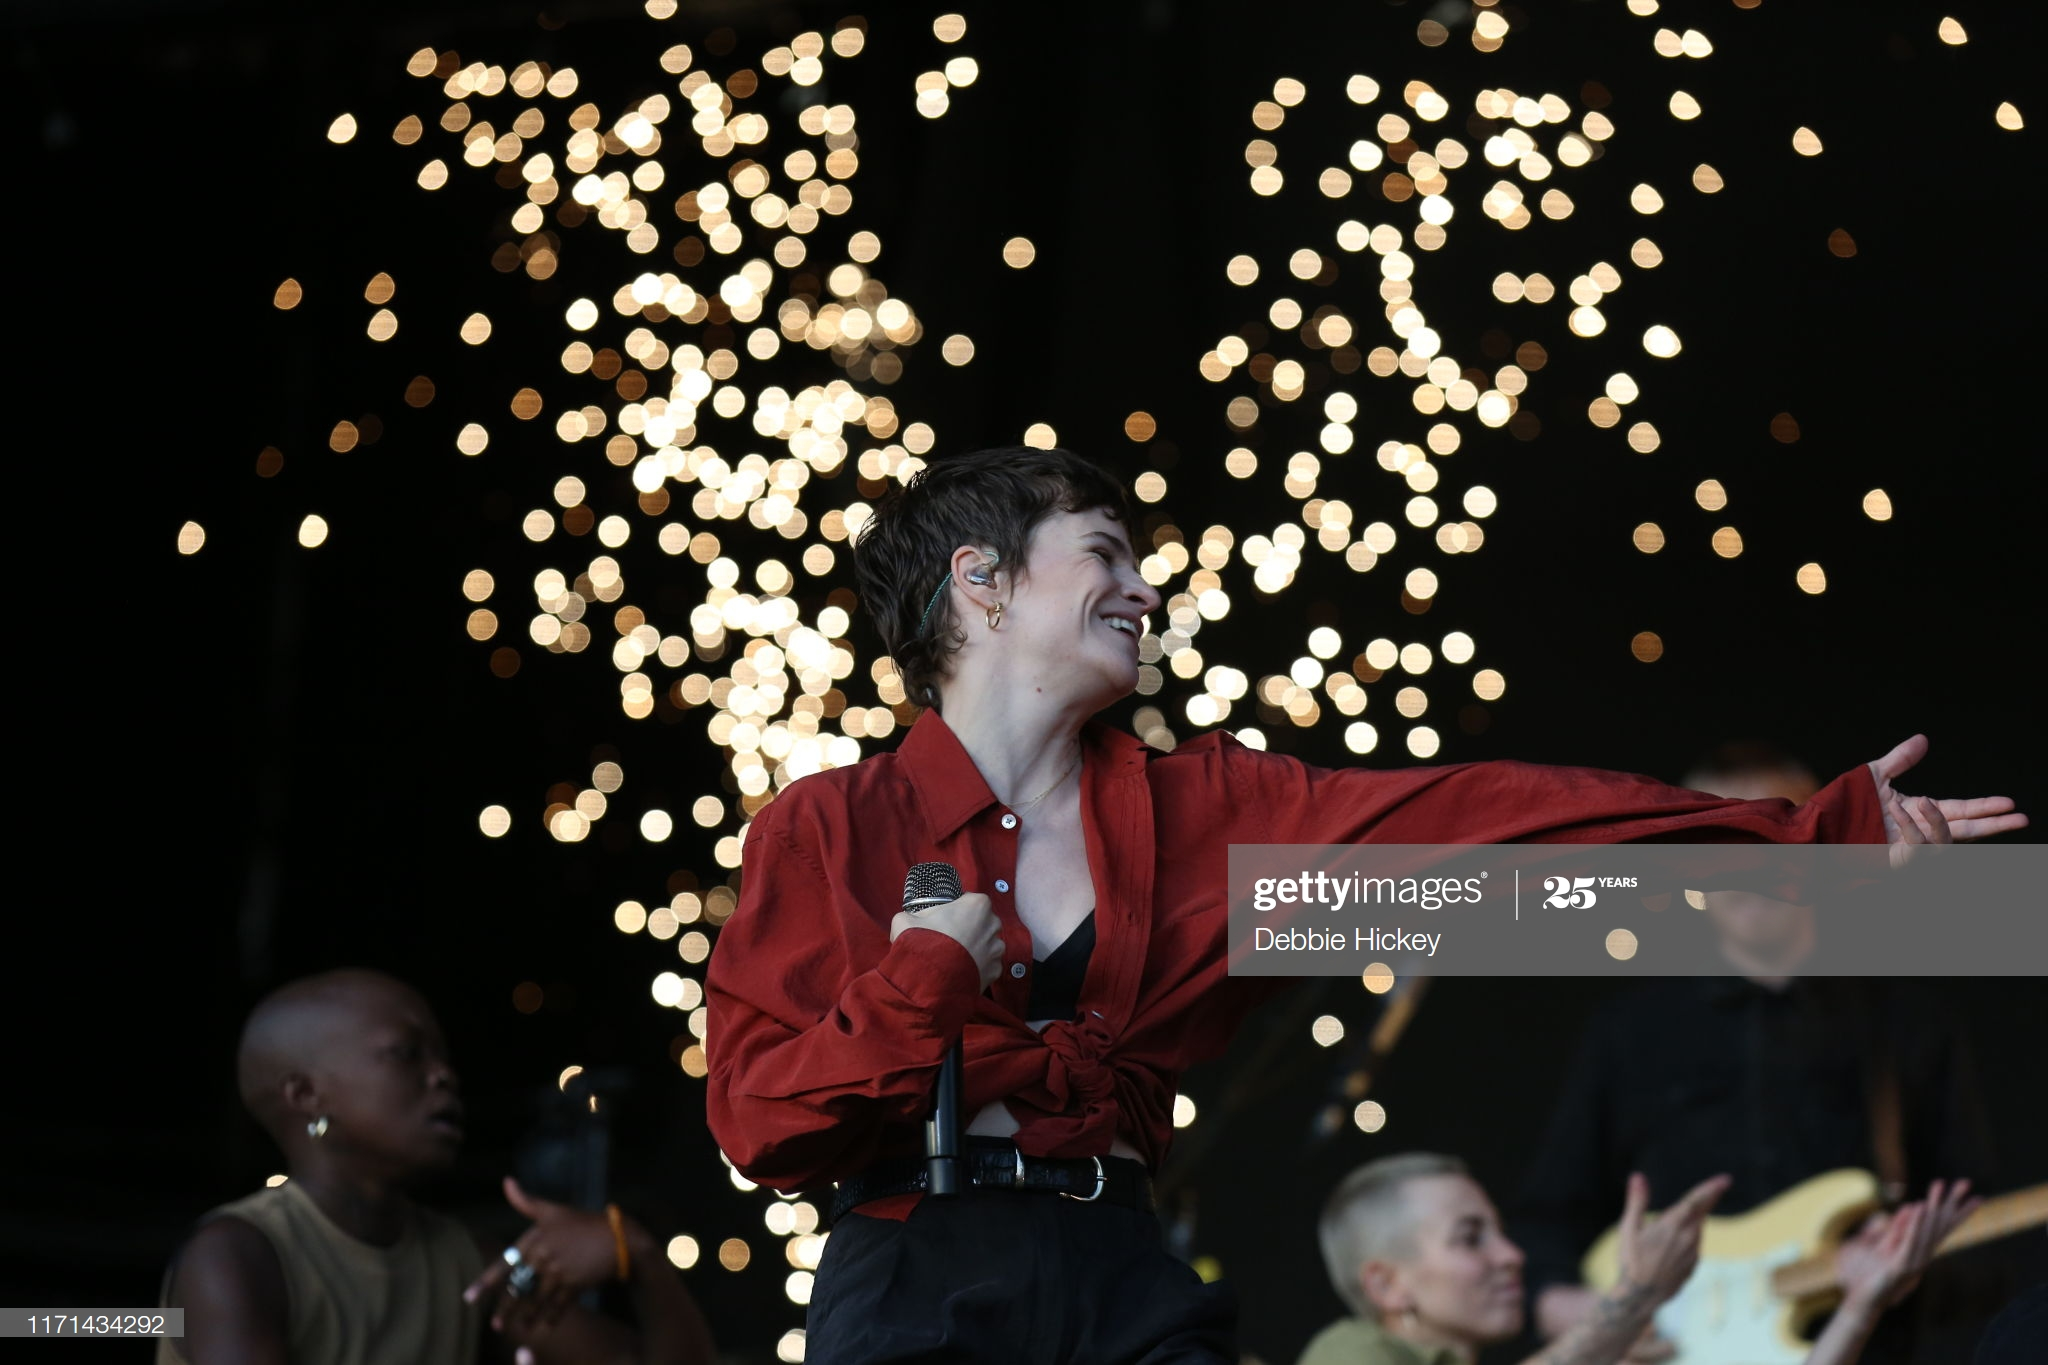 STRADBALLY, IRELAND - AUGUST 31: Heloise Letissier of Christine and the Queens performs on stage during Electric Picnic Music Festival 2019 at Stradbally Hall Estate on August 31, 2019 in Stradbally, Ireland. (Photo by Debbie Hickey/Getty Images)